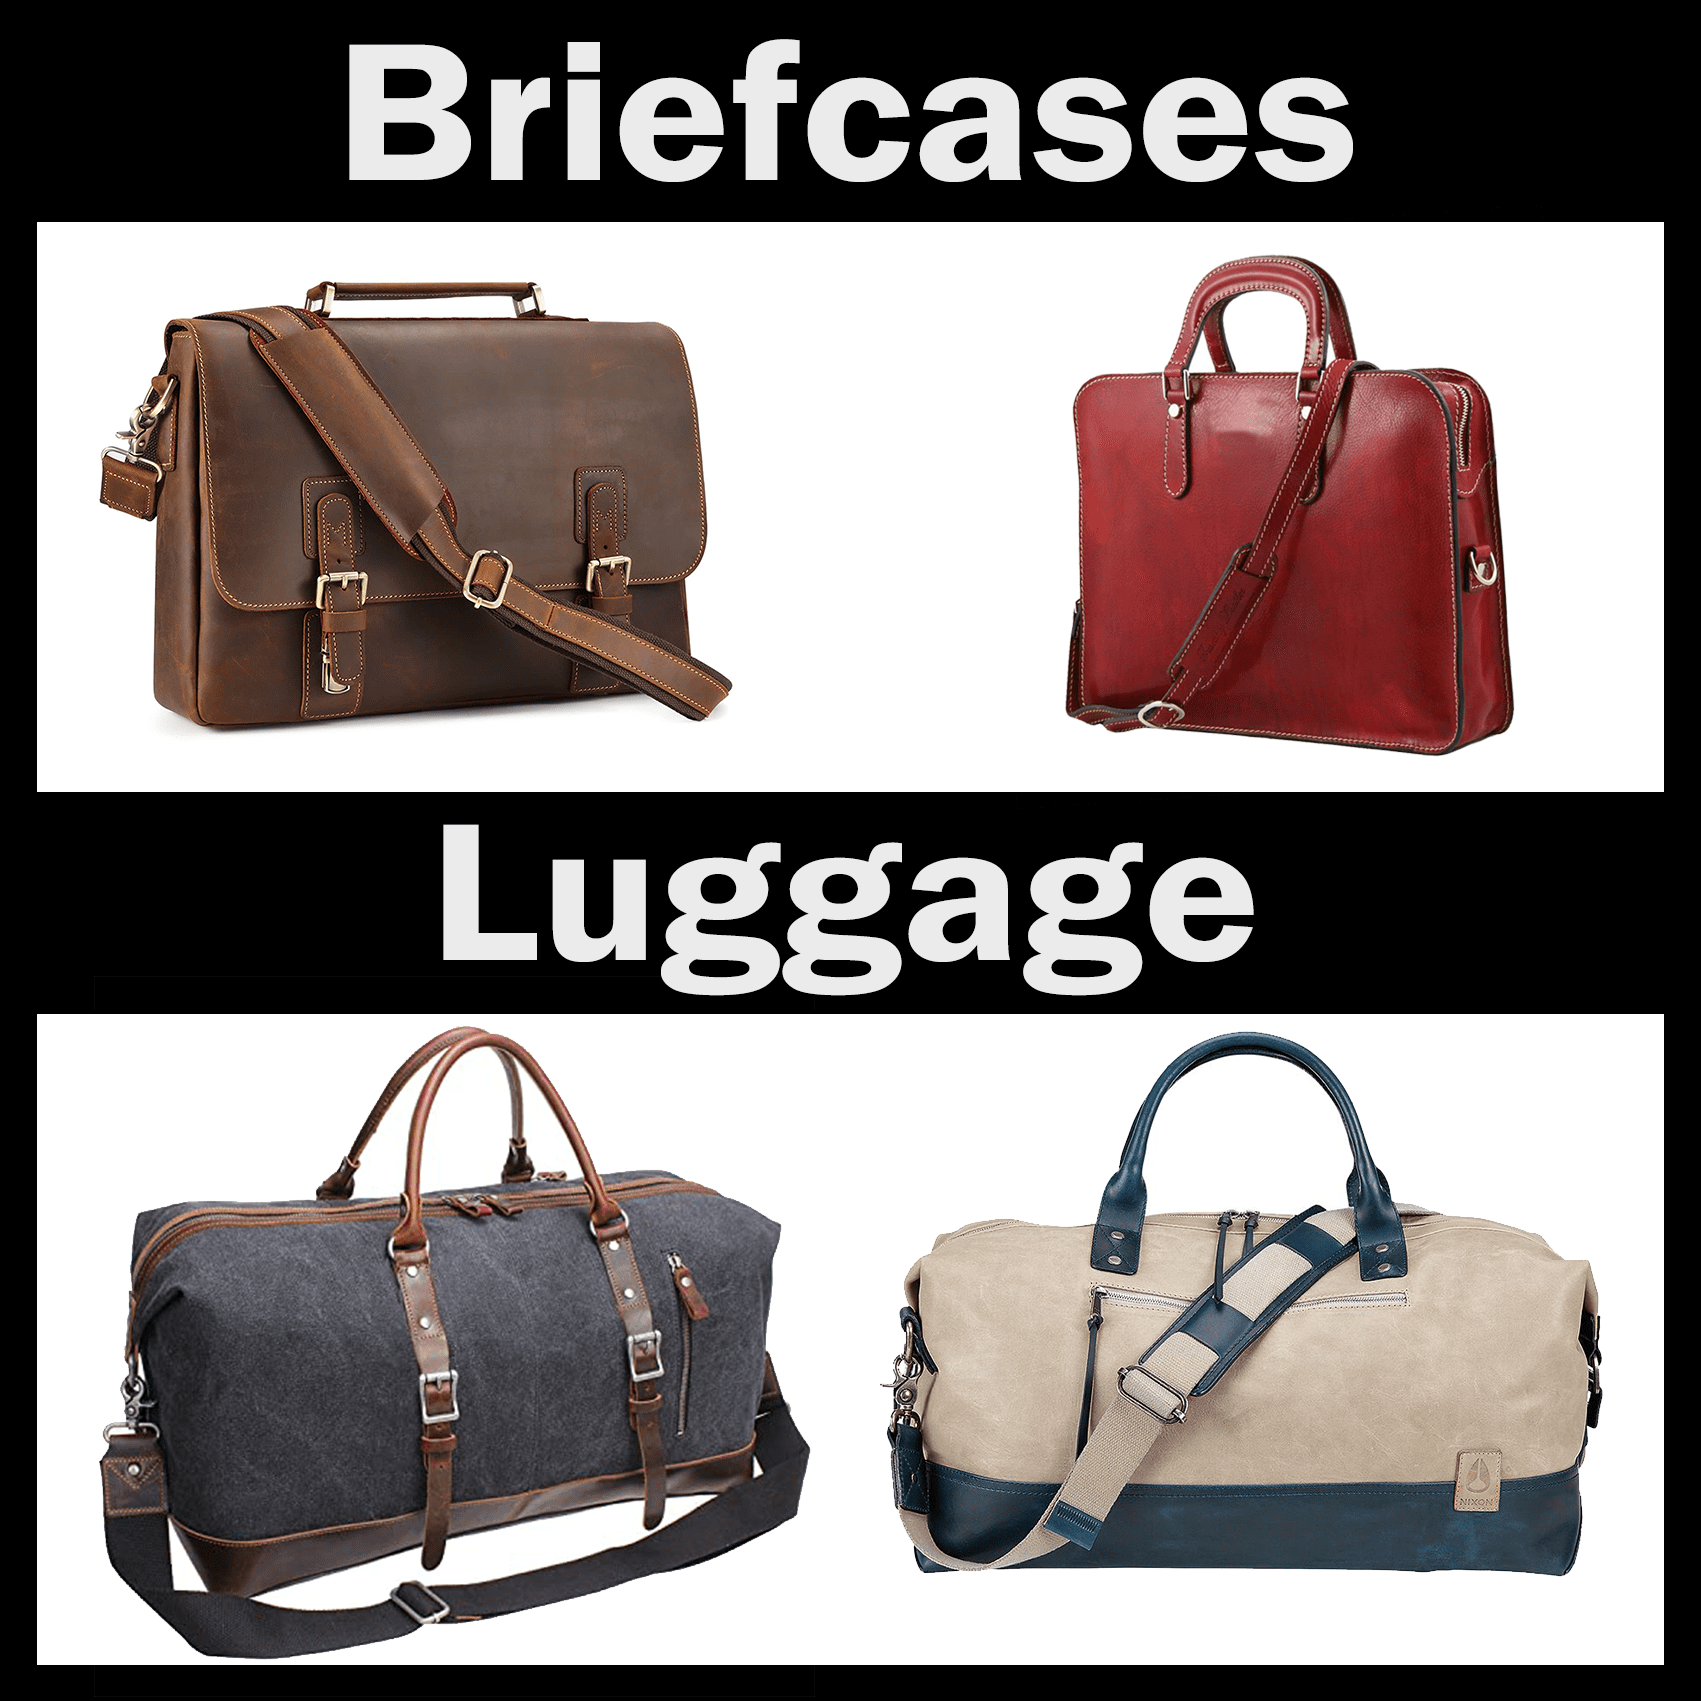 Fit any briefcase or luggage!